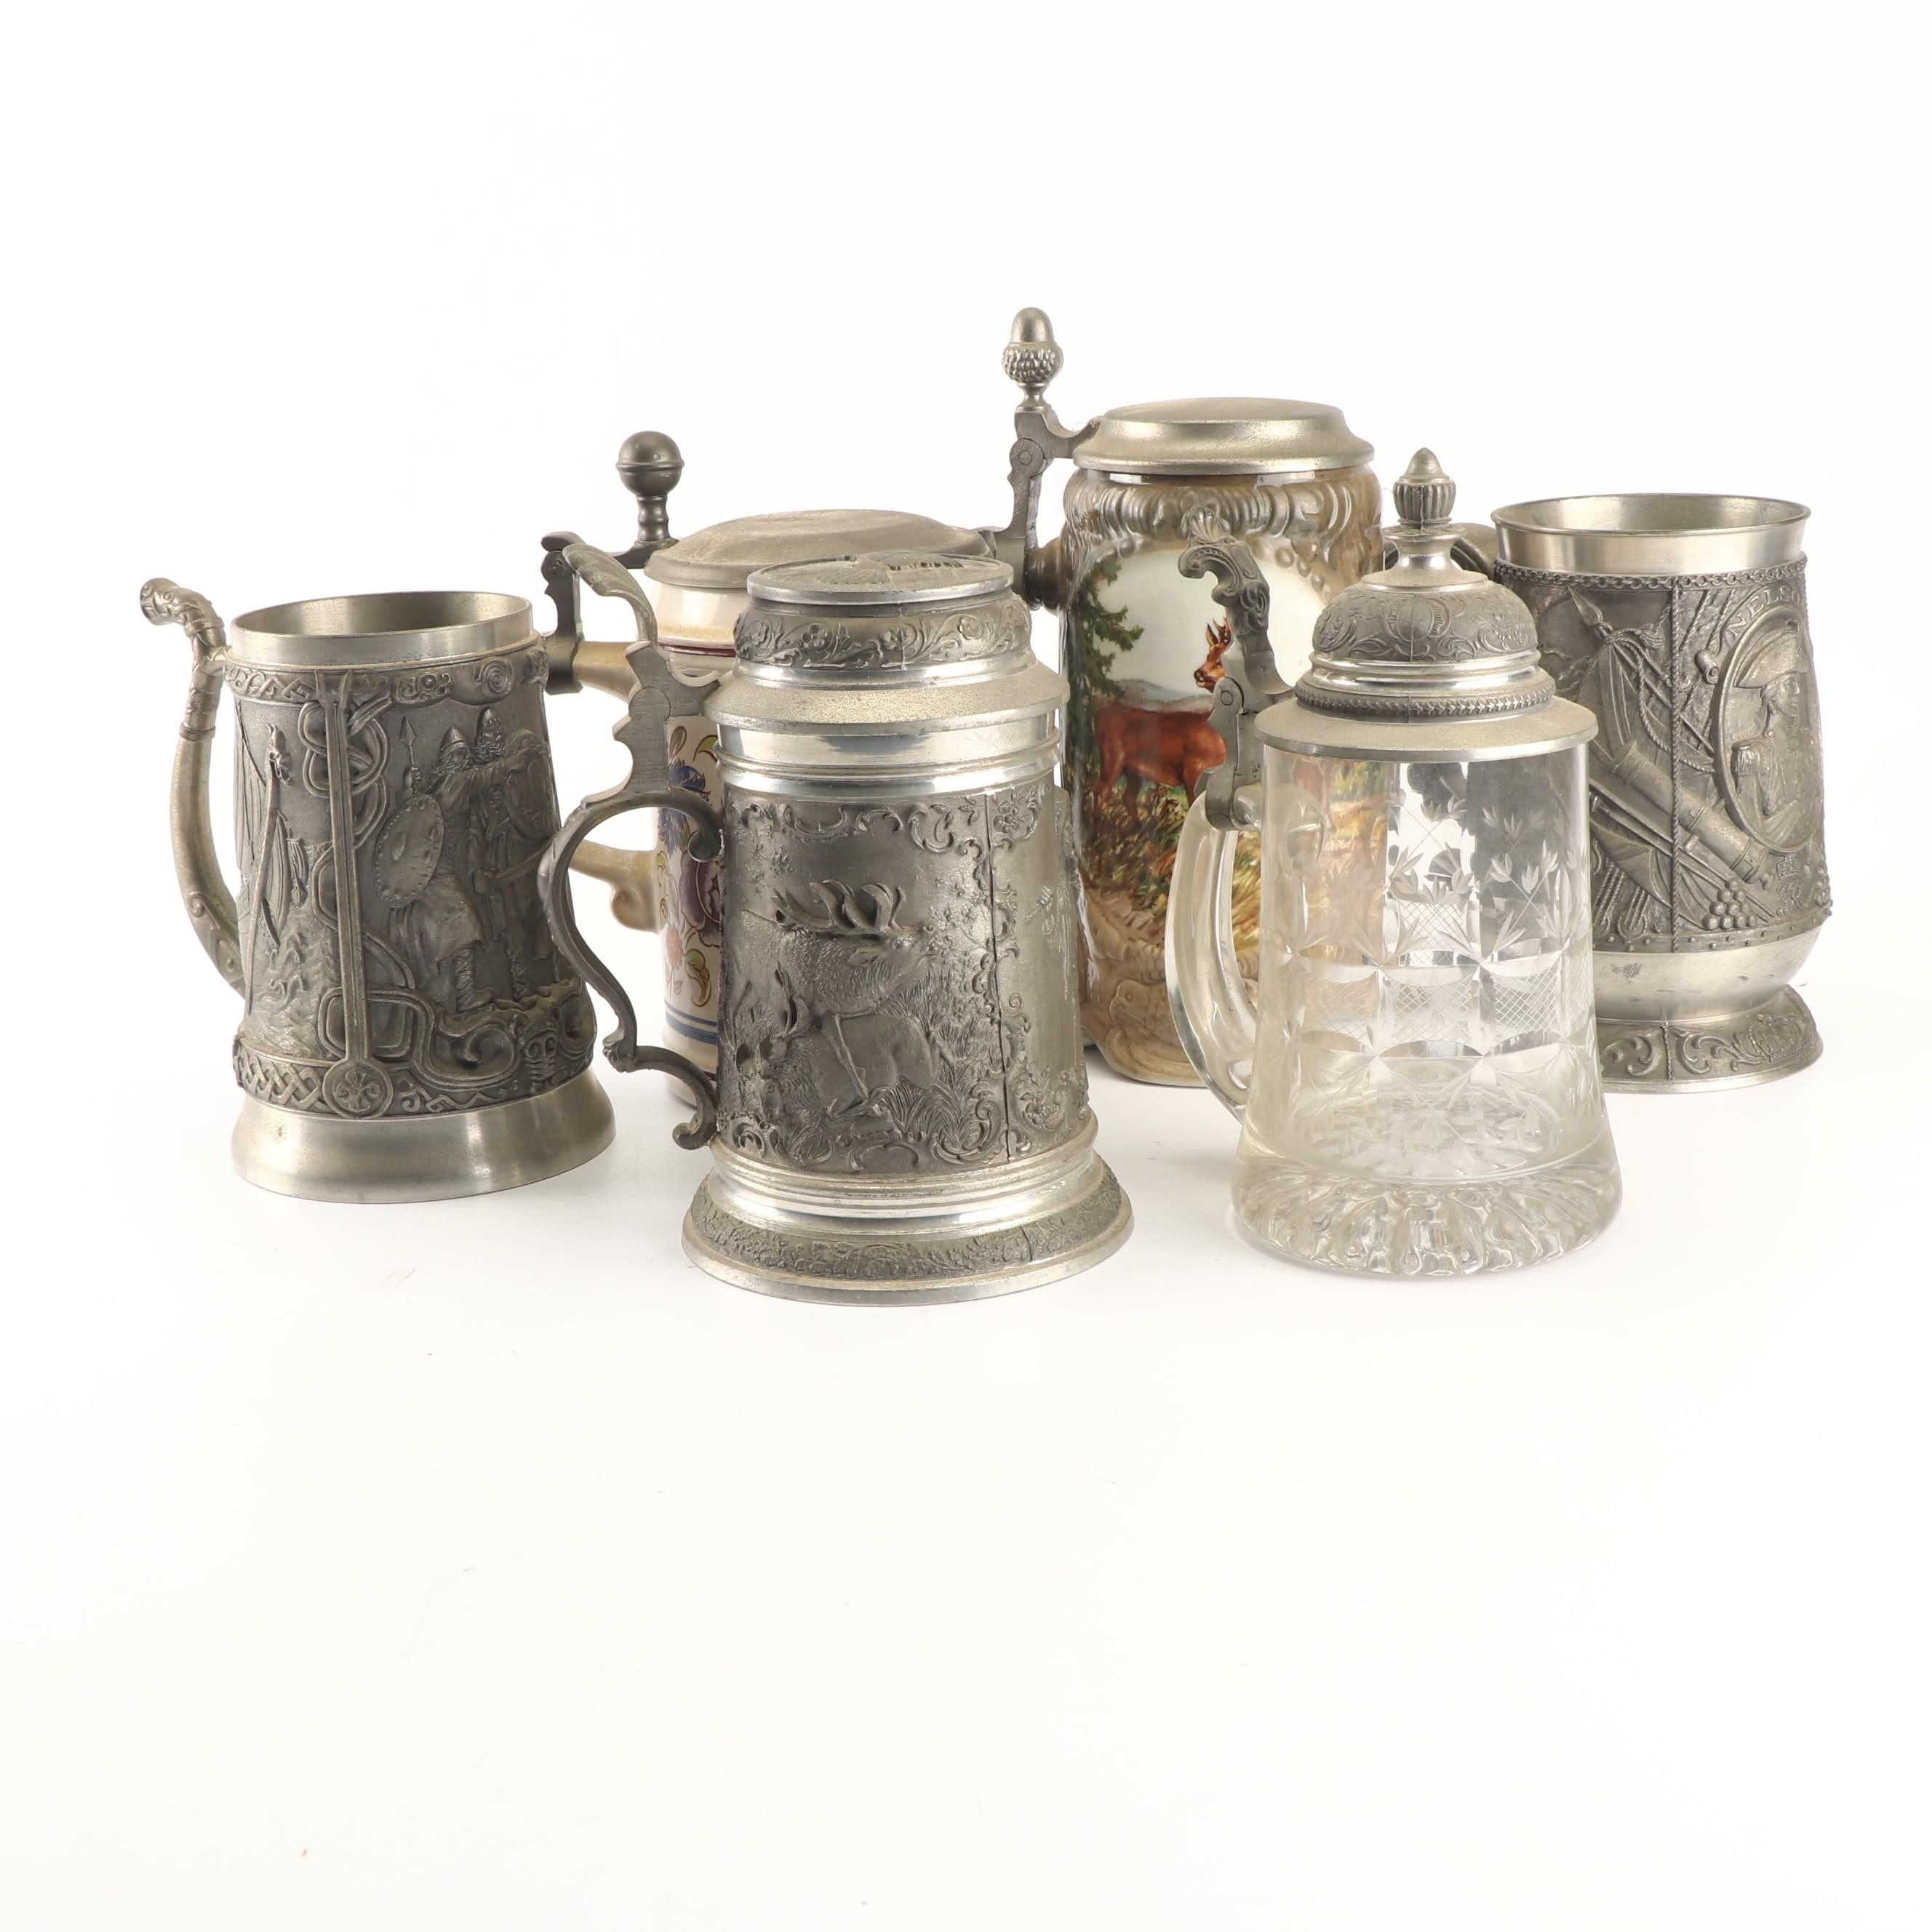 Embossed Pewter Tankards with Other Steins including Gerz and Schrobenhausen